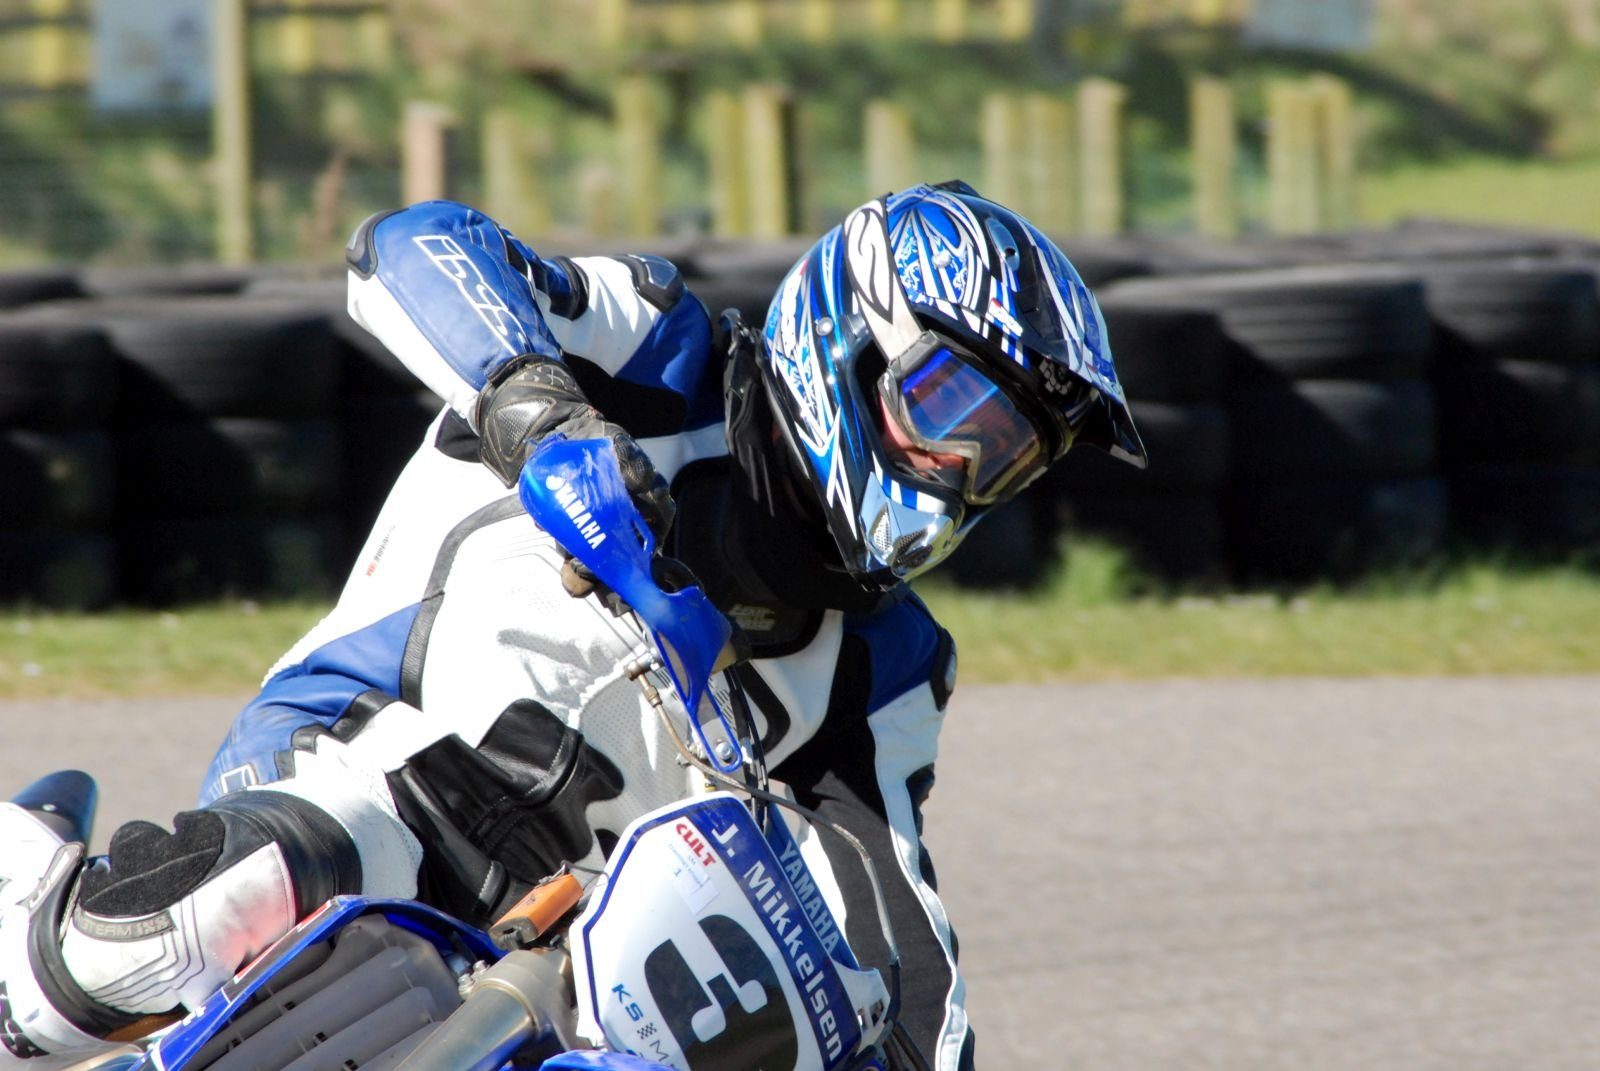 Supermotard_DM_ALS_2009 (21)